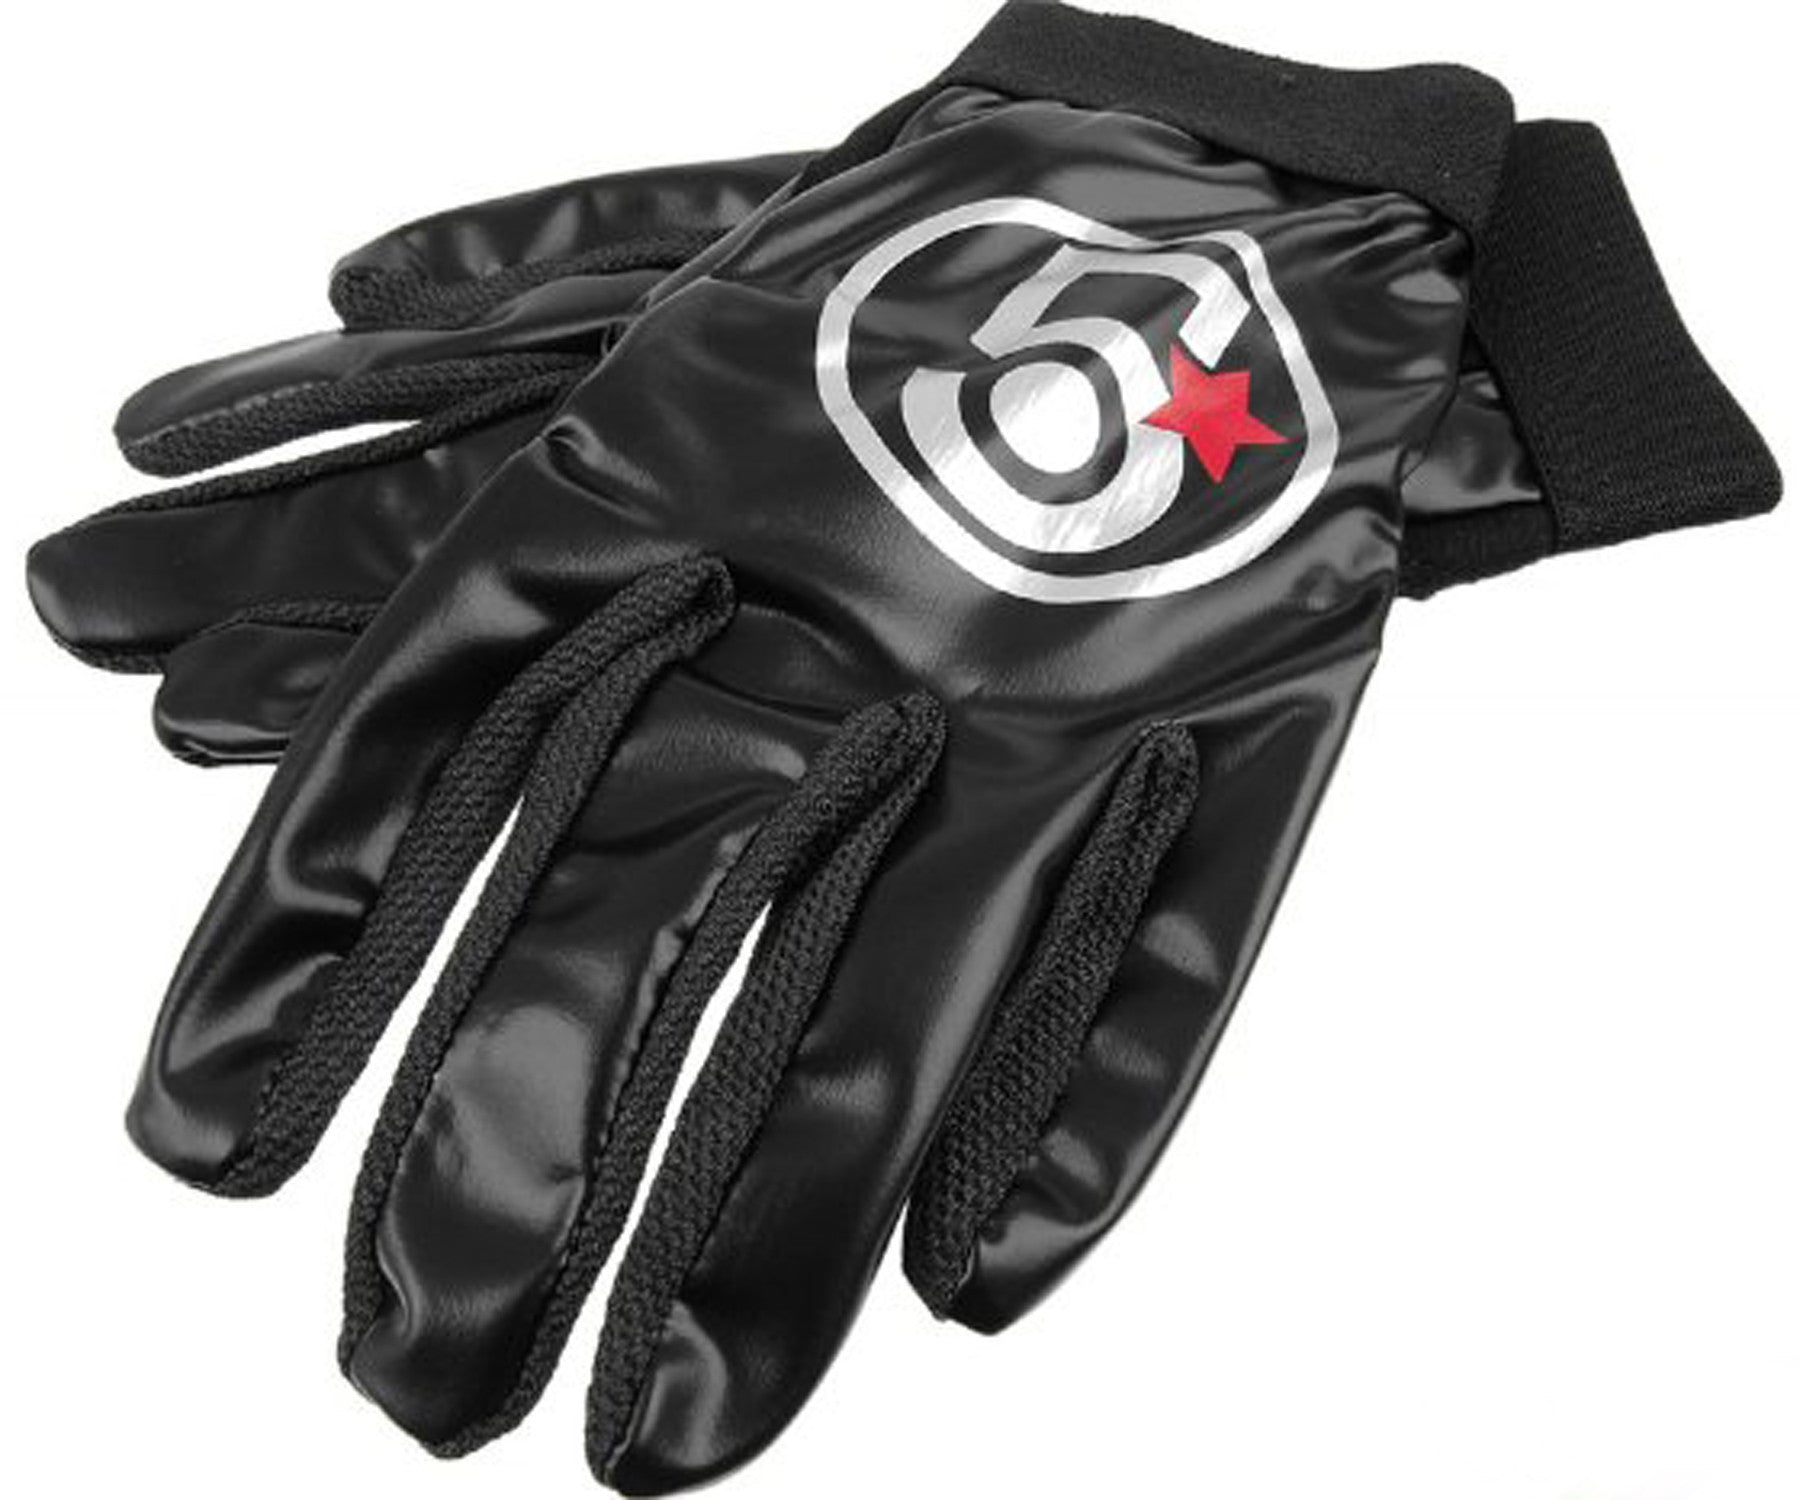 5 Bling Streamline track gloves - black - Retrogression